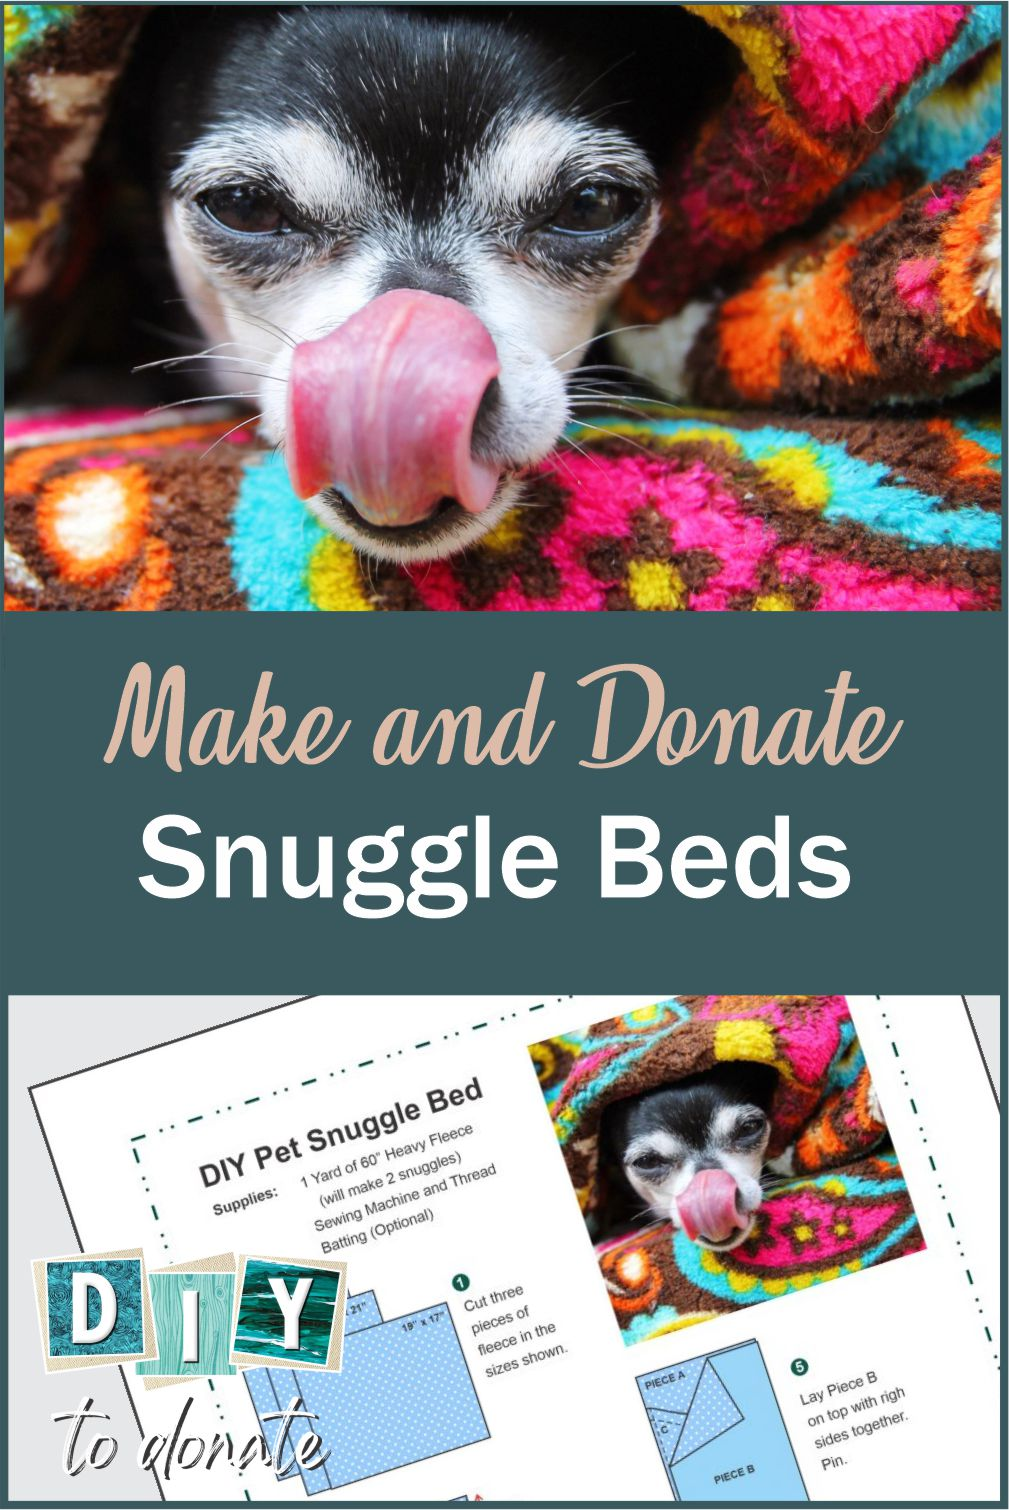 Download our PDF project sheet to learn how to make snuggle beds and where you can donate them to comfort animals in shelters. #diytodonate #animalshelters #comfortbeds #animalbeds #diy #giveback #helpers #communityservice #community